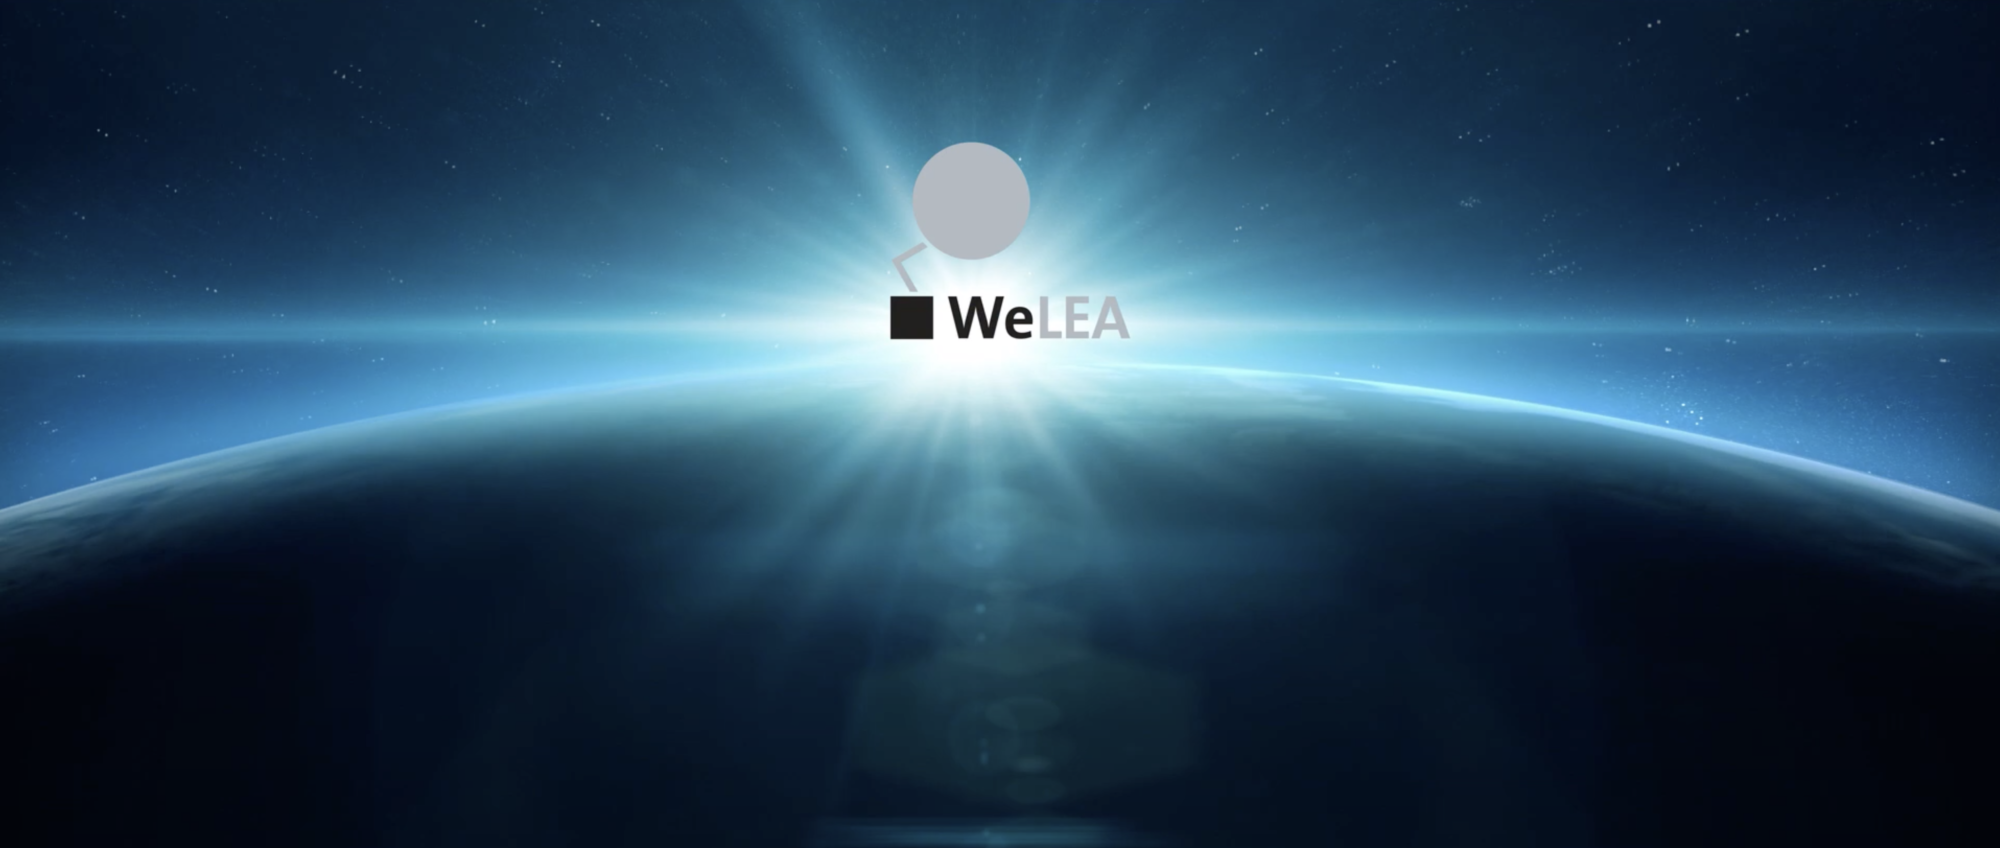 We LEA Satelliten Image Film